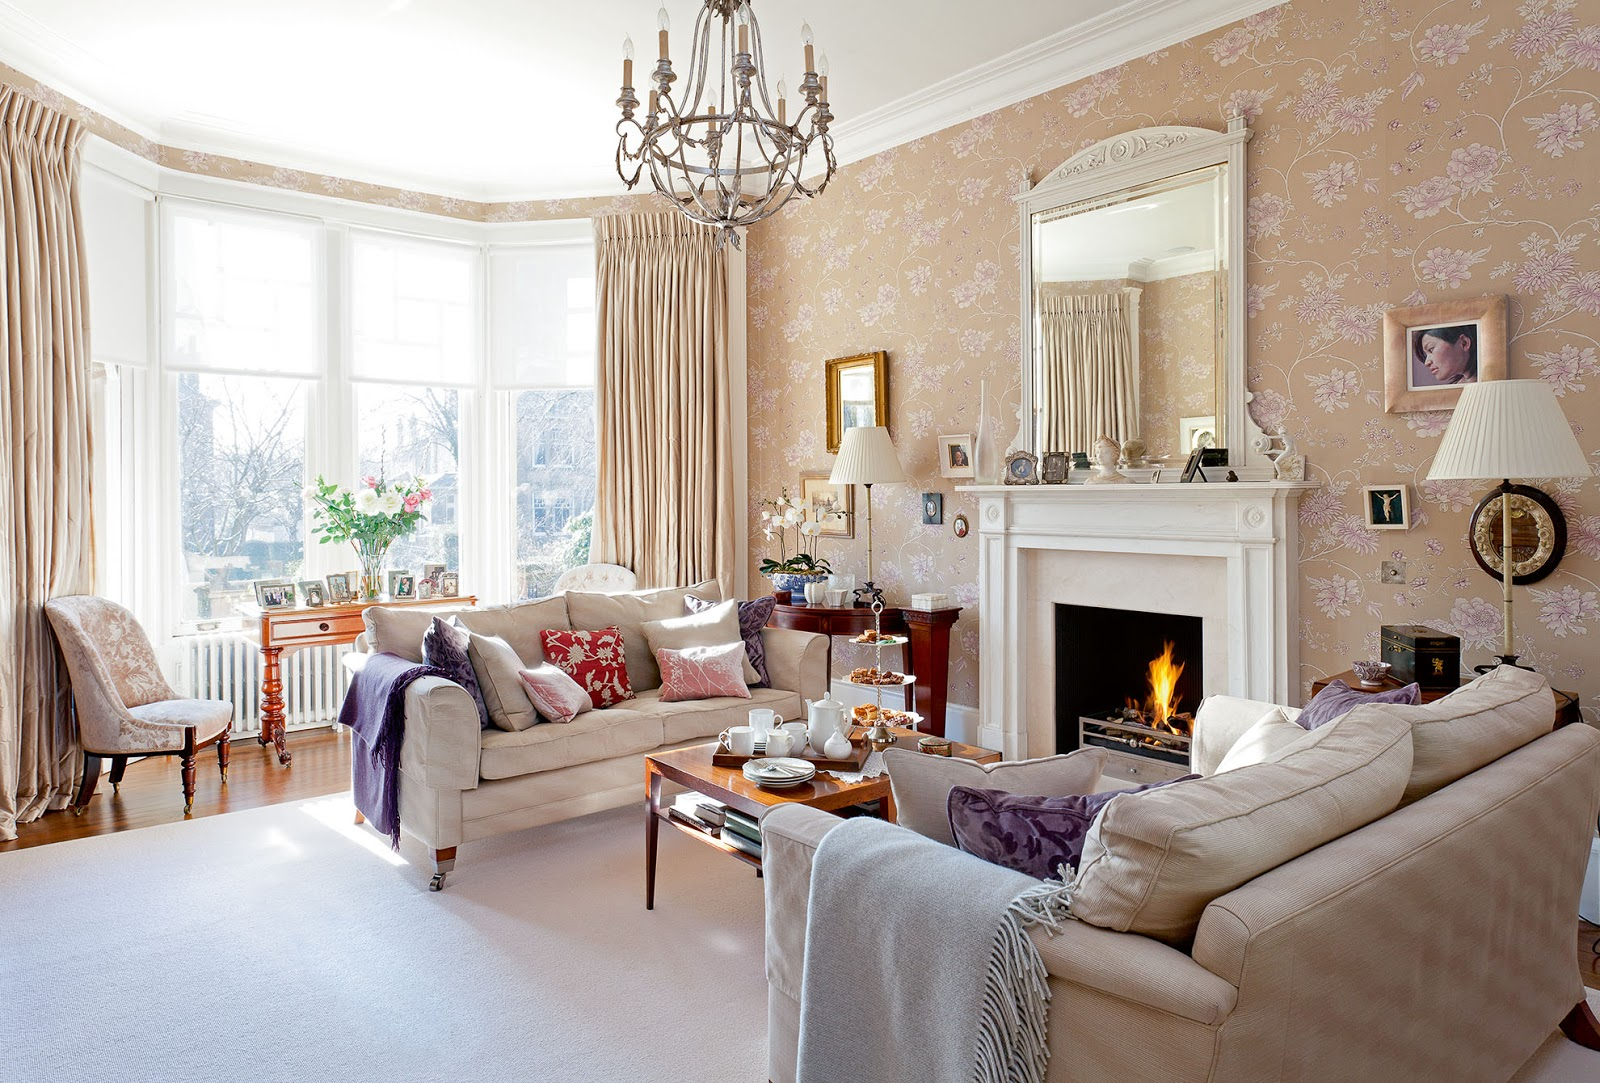 The edwardian period interiors comfortable home for Edwardian style interior design